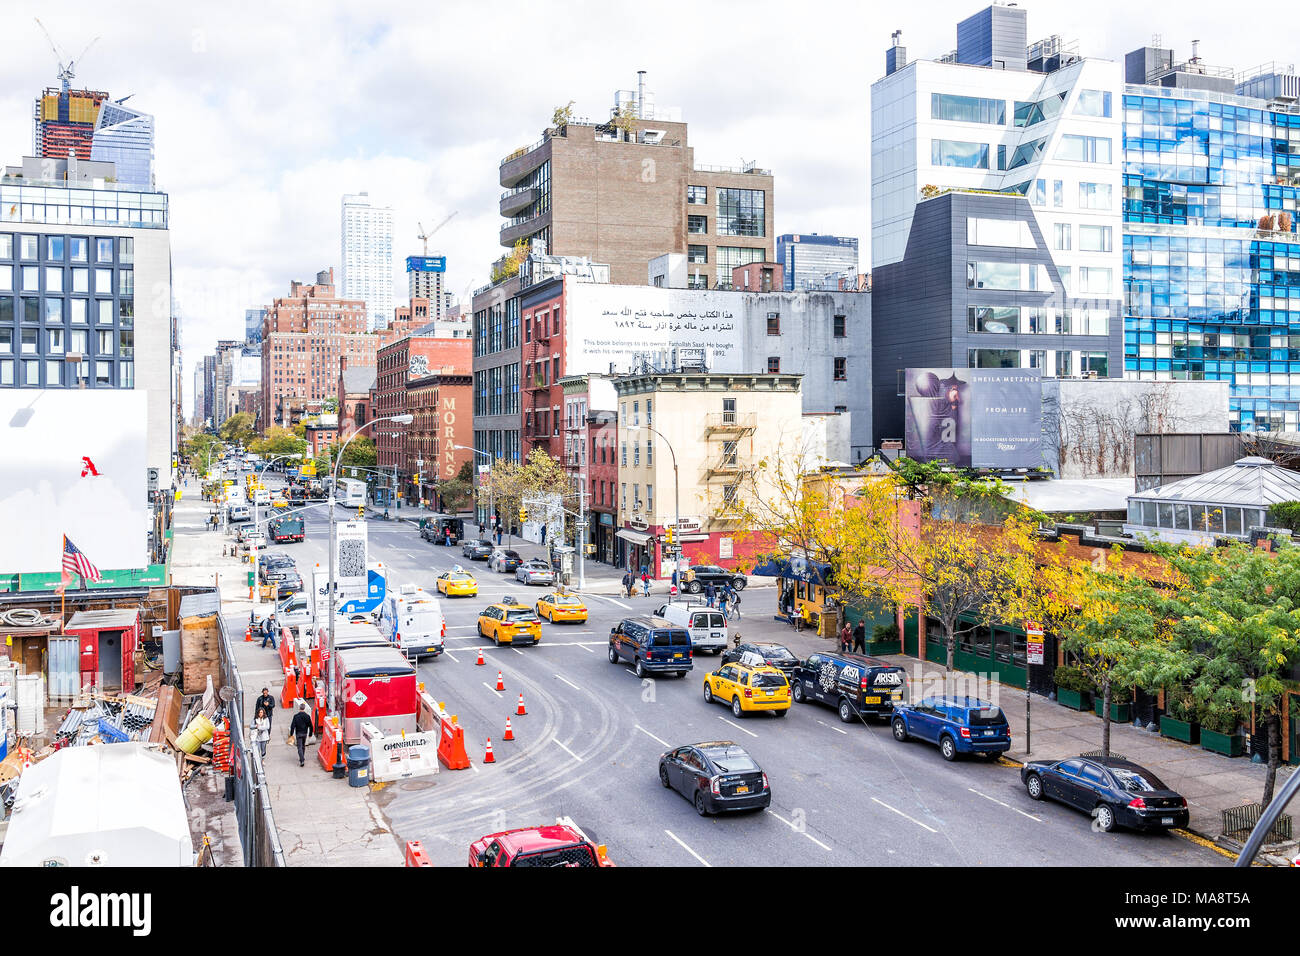 New York City, USA - October 30, 2017: Aerial view of modern Chelsea neighborhood construction buildings, parking and cars traffic on street below in  Stock Photo